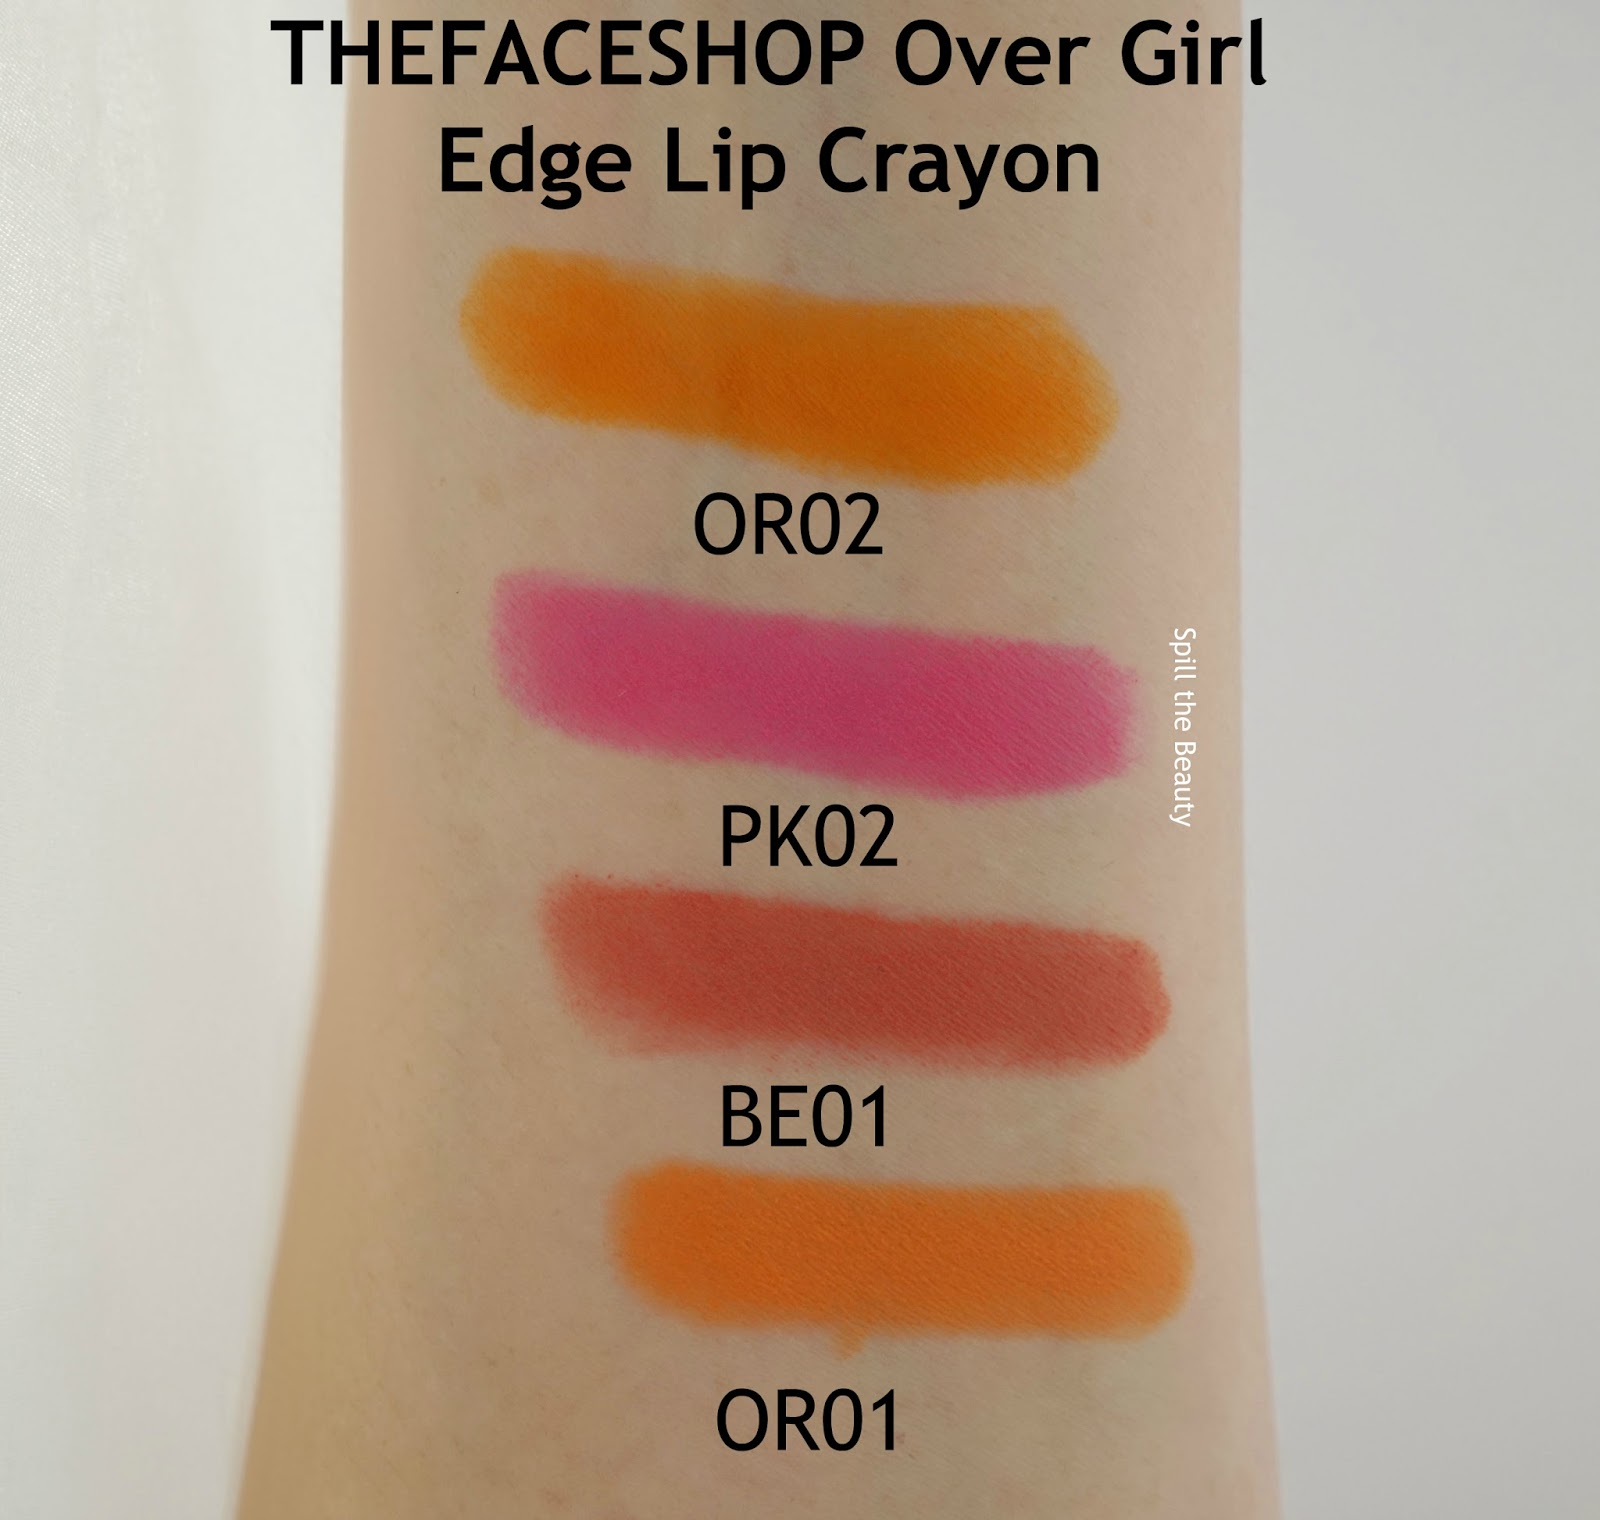 THEFACESHOP over girl edge lip crayon be01 or01 or02 pk02 arm swatches